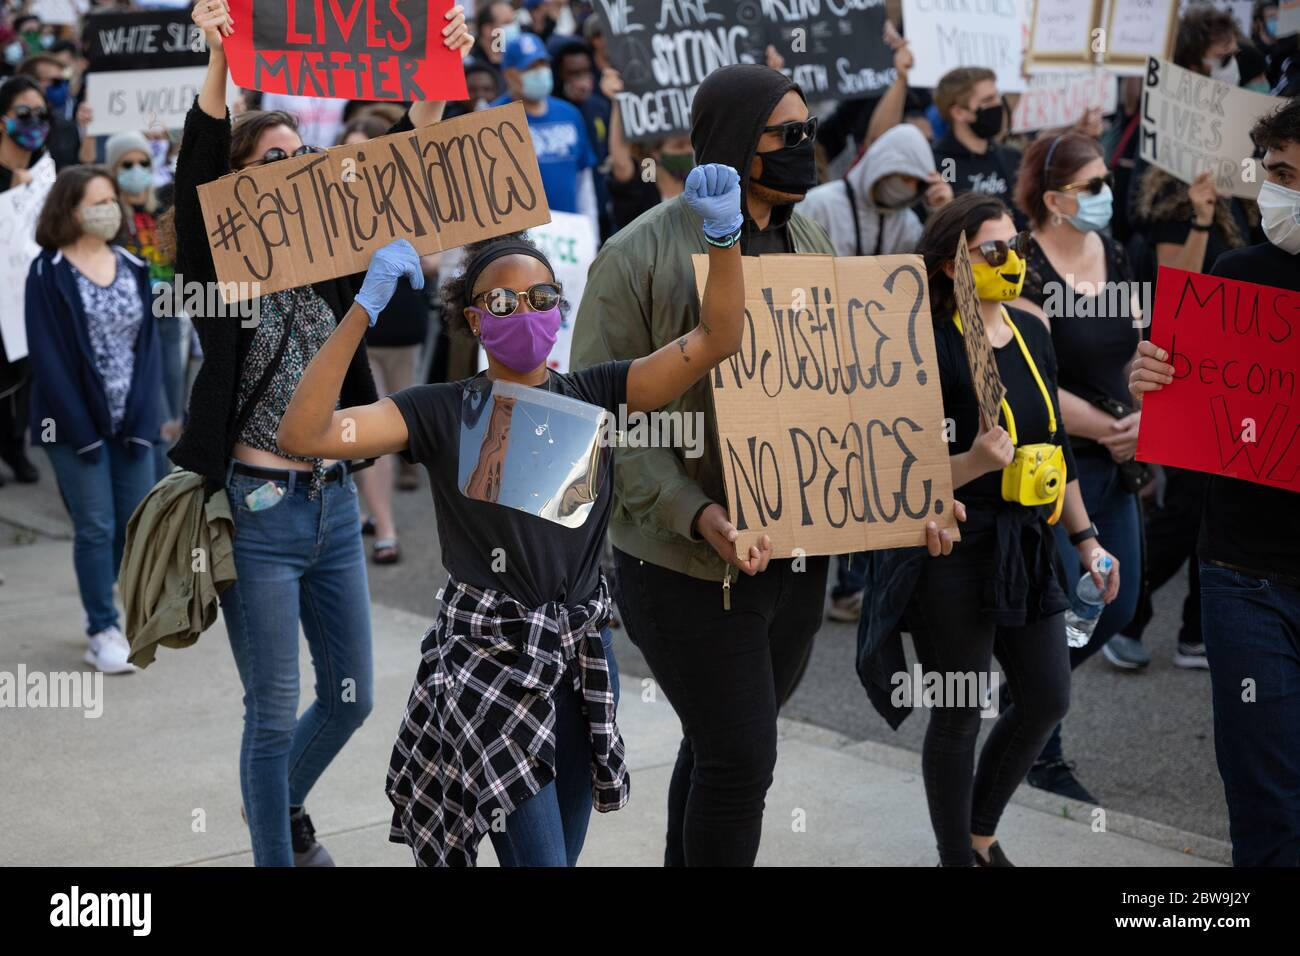 Grand Rapids, Michigan, May 30, 2020: Thousands gathered in downtown Grand Rapids to protest police brutality and the death of George Floyd. Stock Photo